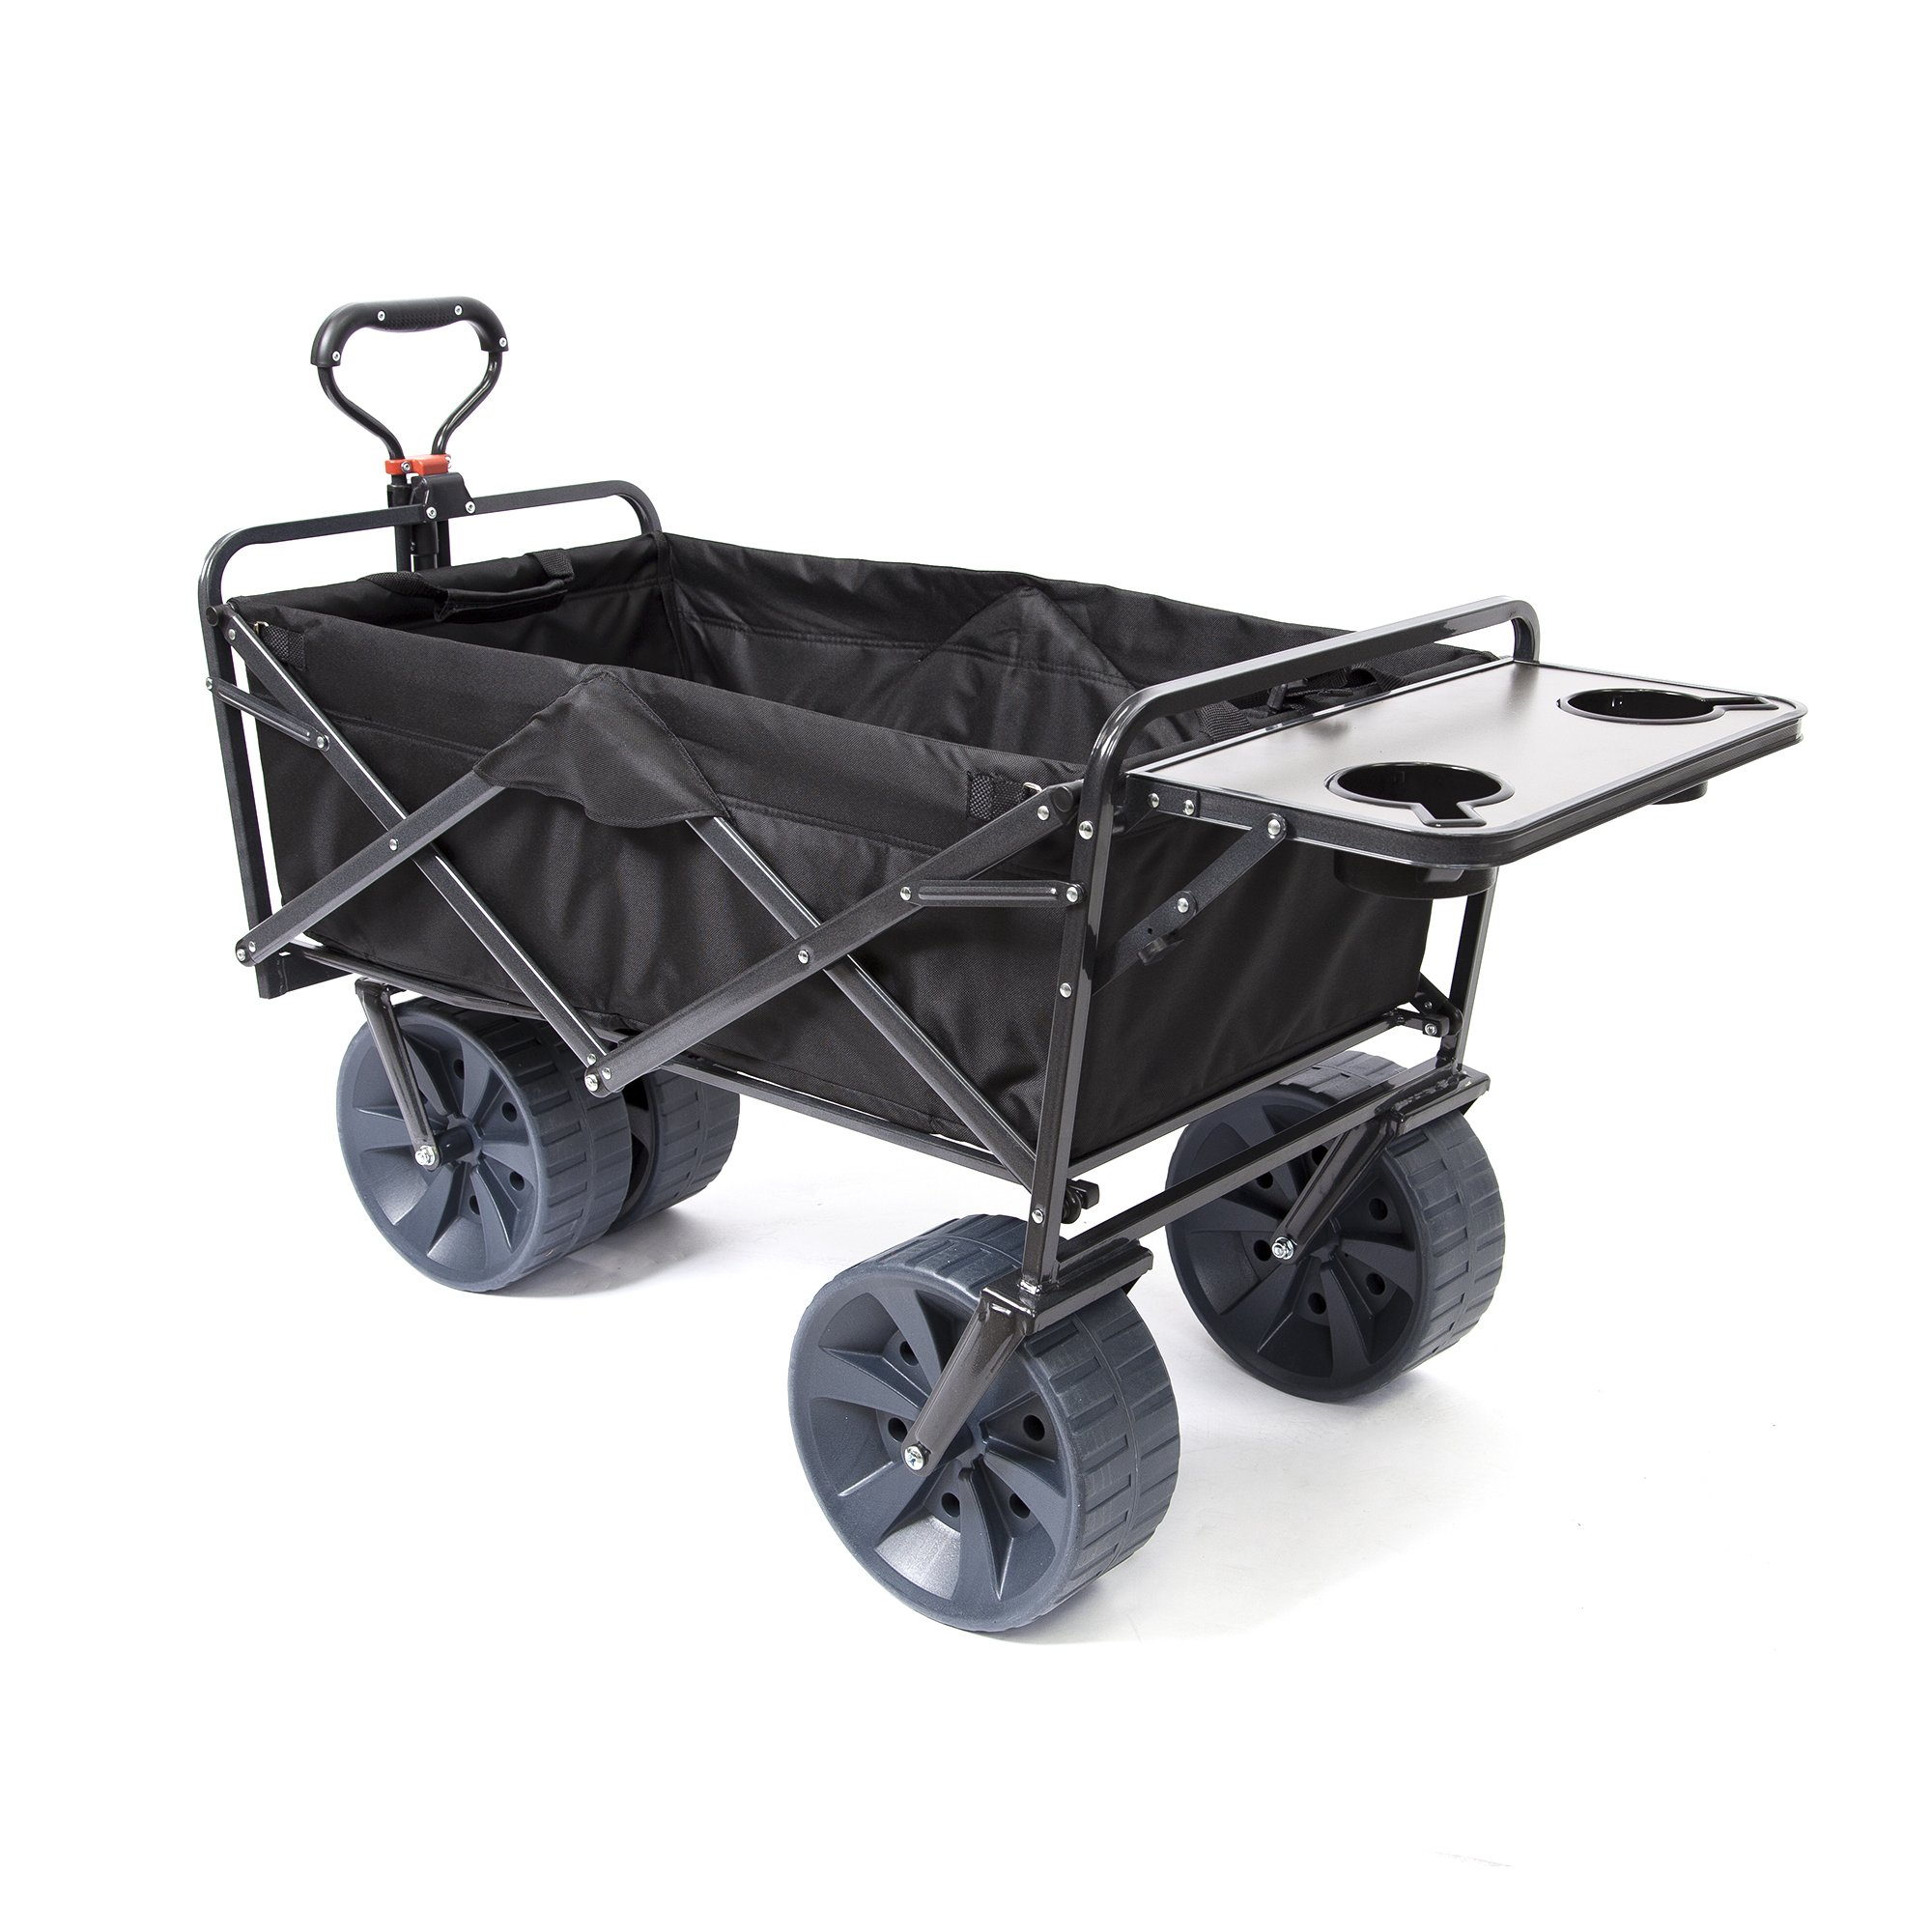 Mac Sports Heavy Duty Collapsible Folding All Terrain Utility Wagon Beach Cart (Black with Table) by Mac Sports